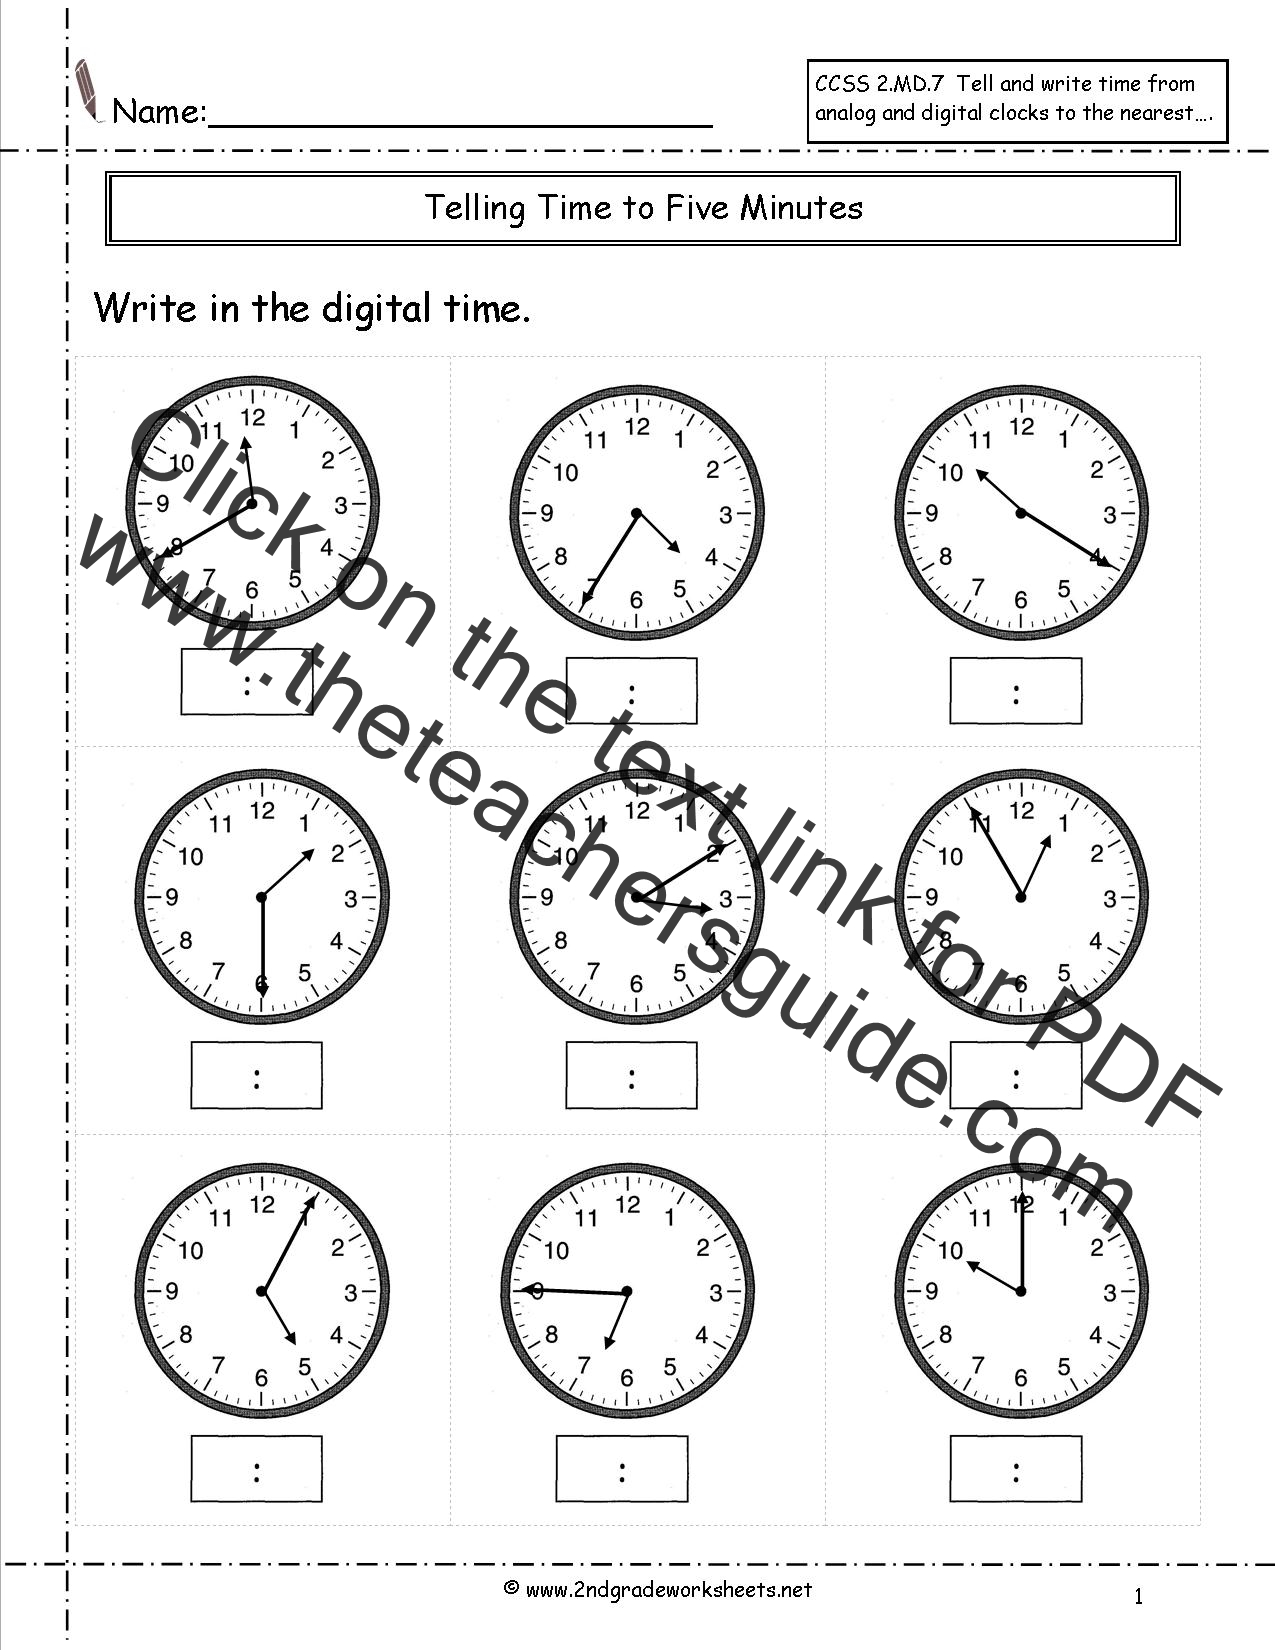 CCSS 2.MD.7 Worksheets, Telling Time to Five Minutes Worksheets